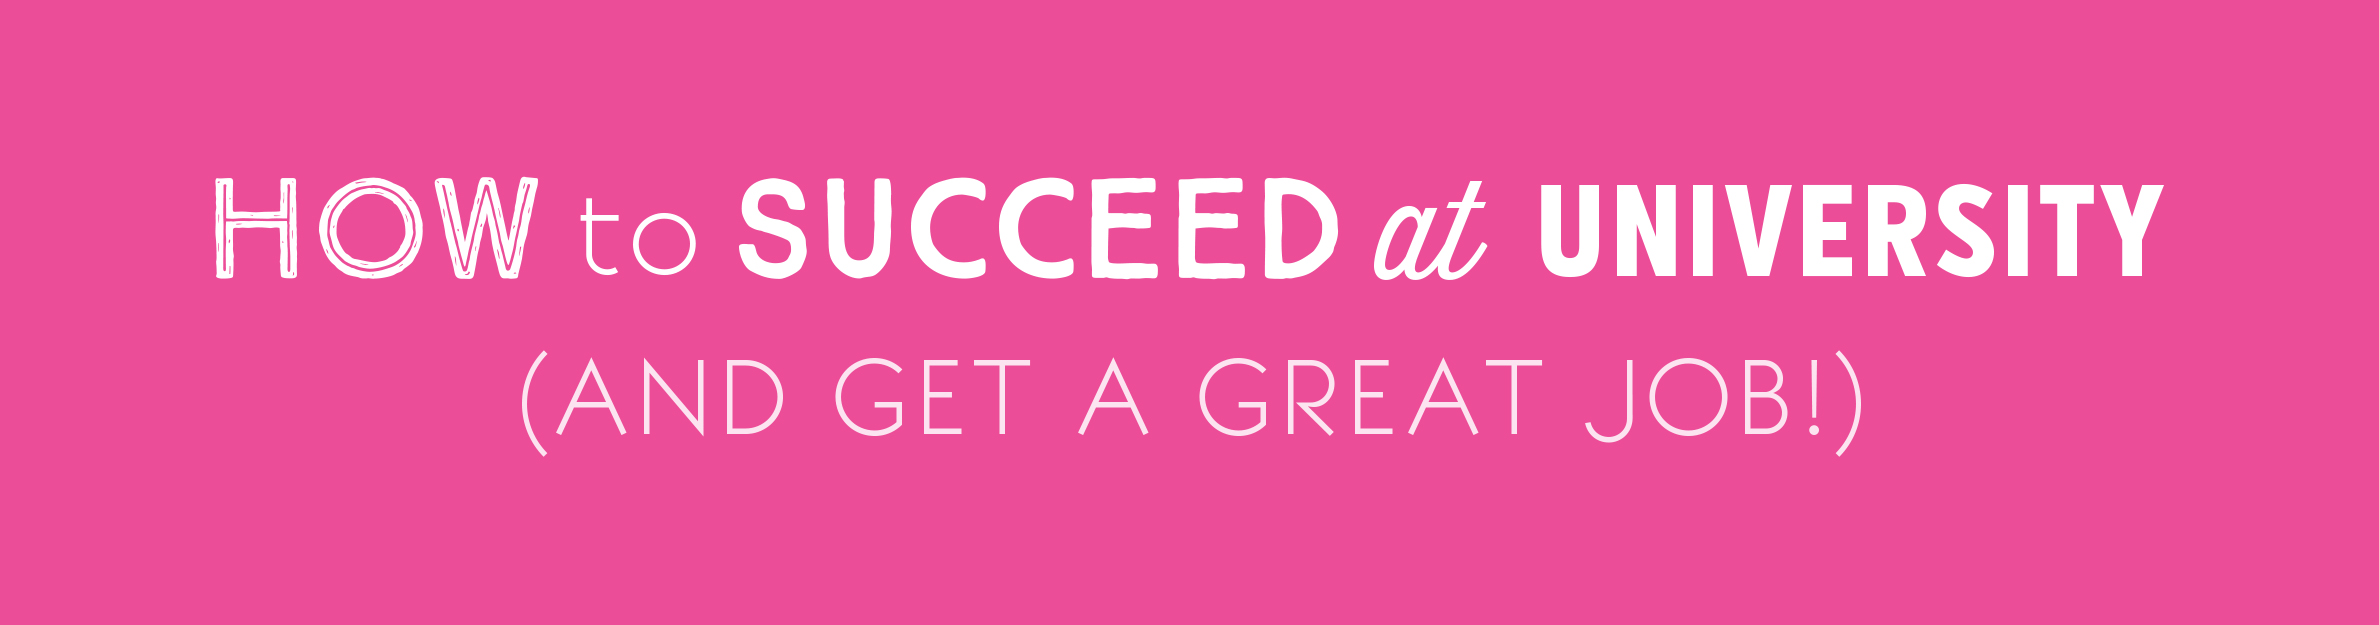 How to Succeed Banner